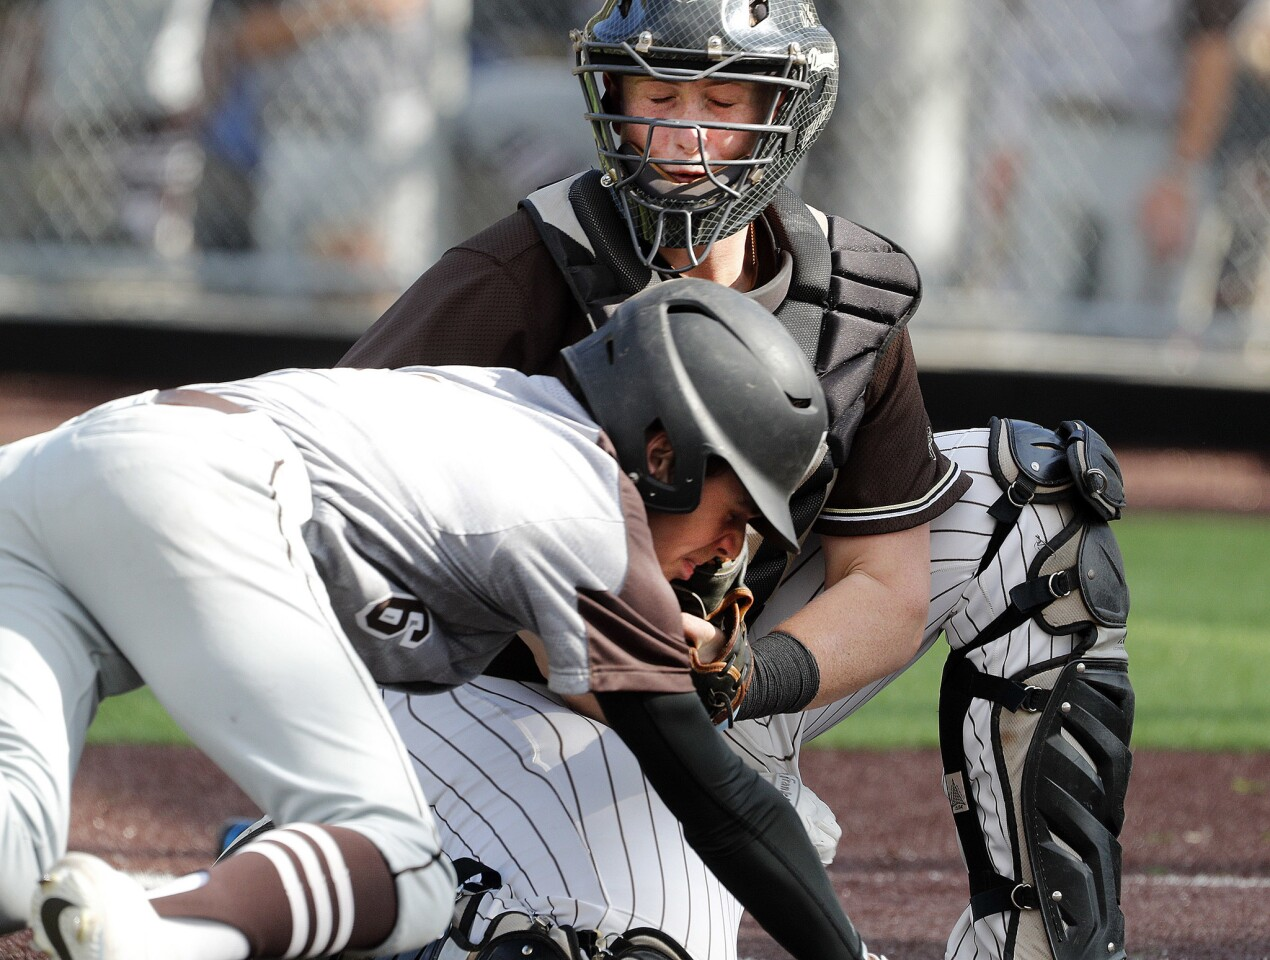 Photo Gallery: Mission League baseball between St. Francis and Crespi